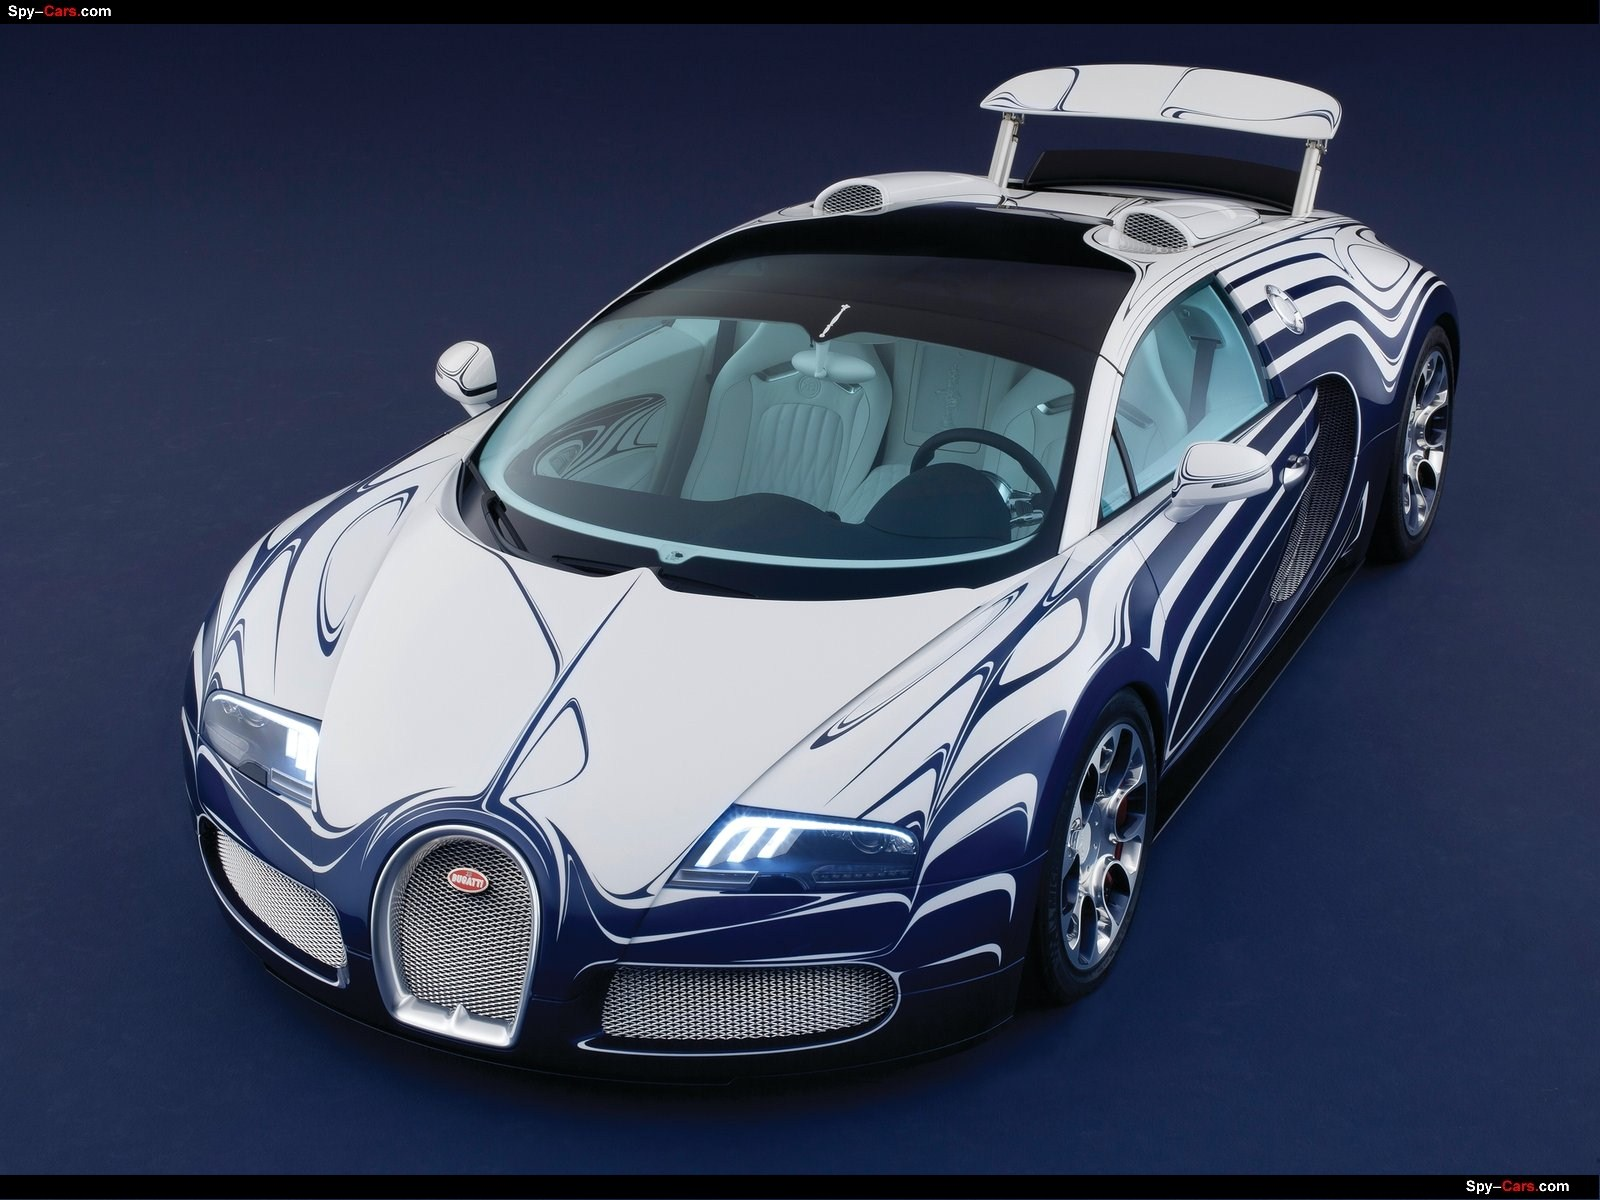 mansory gtspirit veyron at bugatti by geneva edition diamond motor show the vivere moti